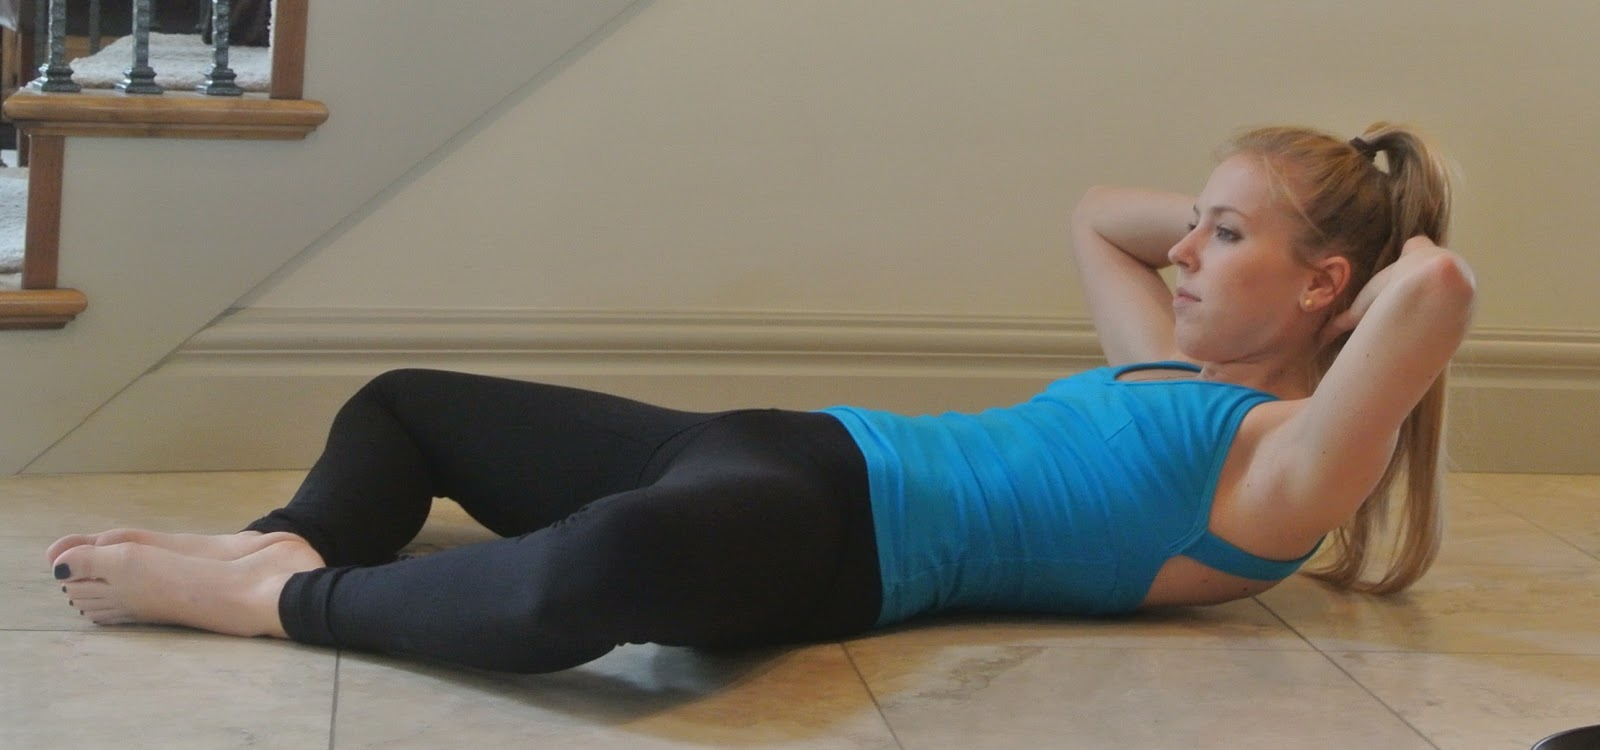 Bree Lena Pilates Workout